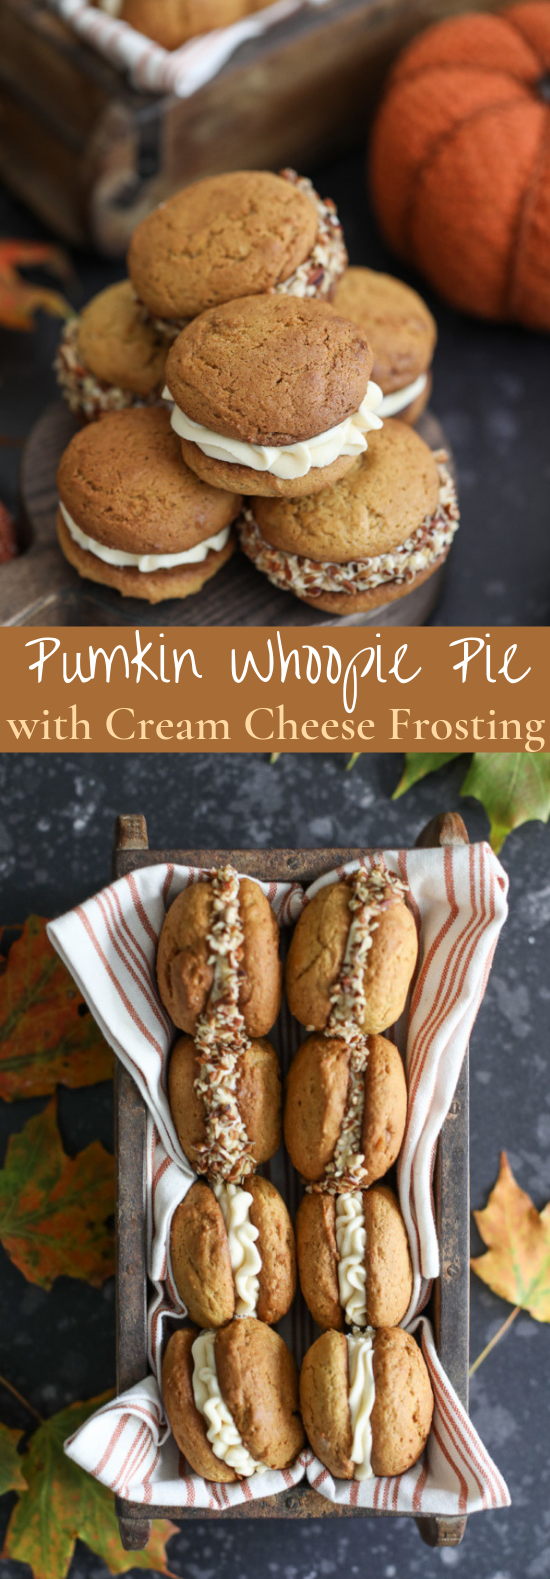 Pumpkin Whoopie Pies with Salted Caramel Cream Cheese Frosting #cookies #desserts